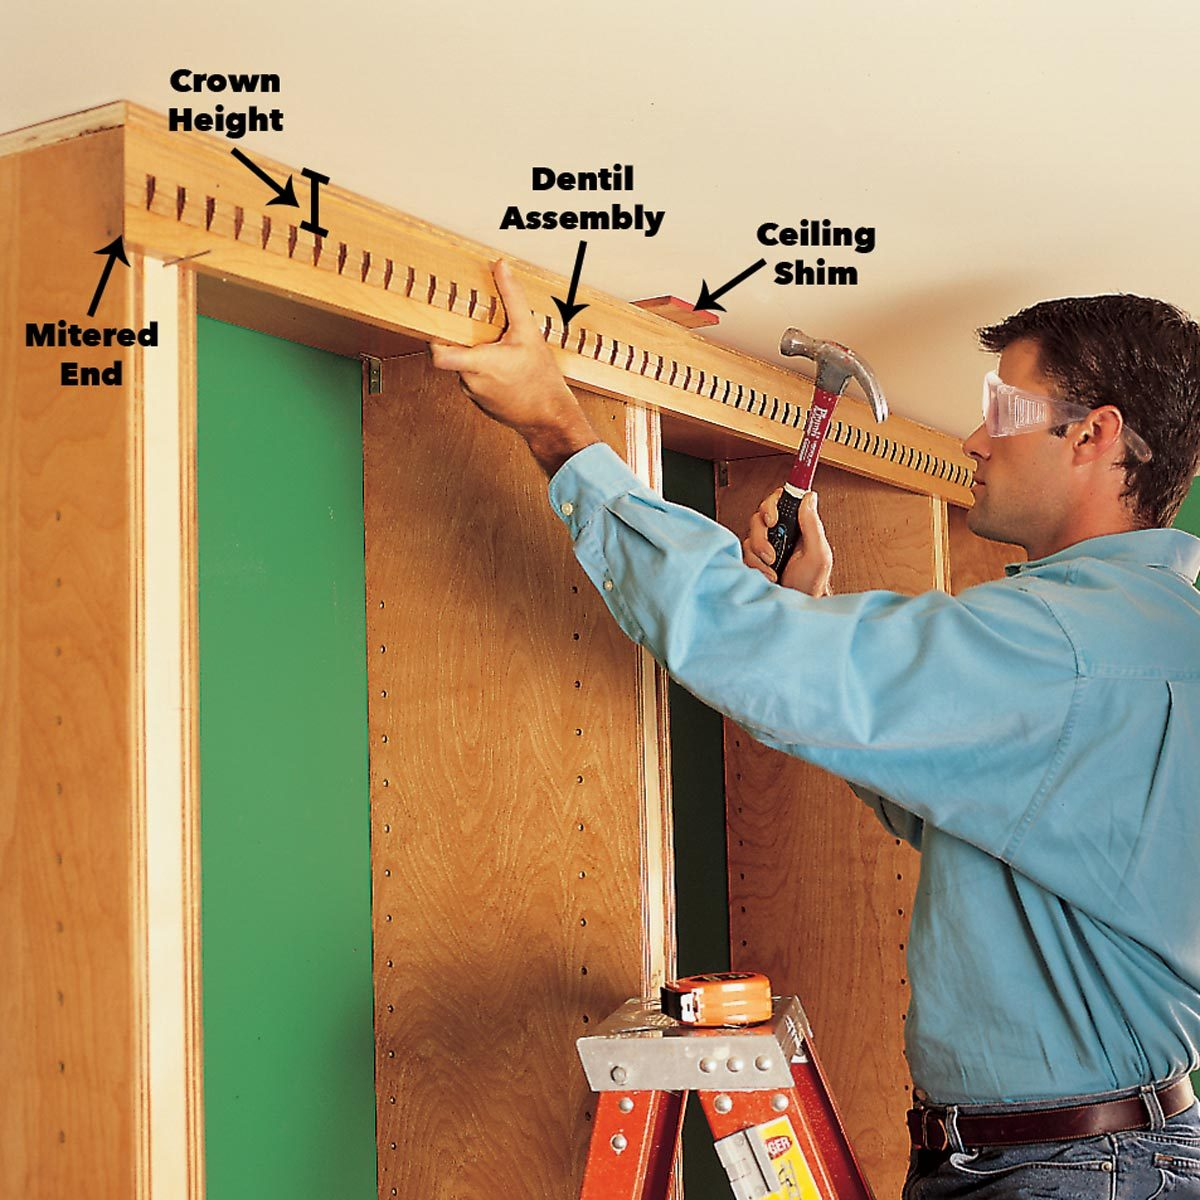 Install the dentil assembly